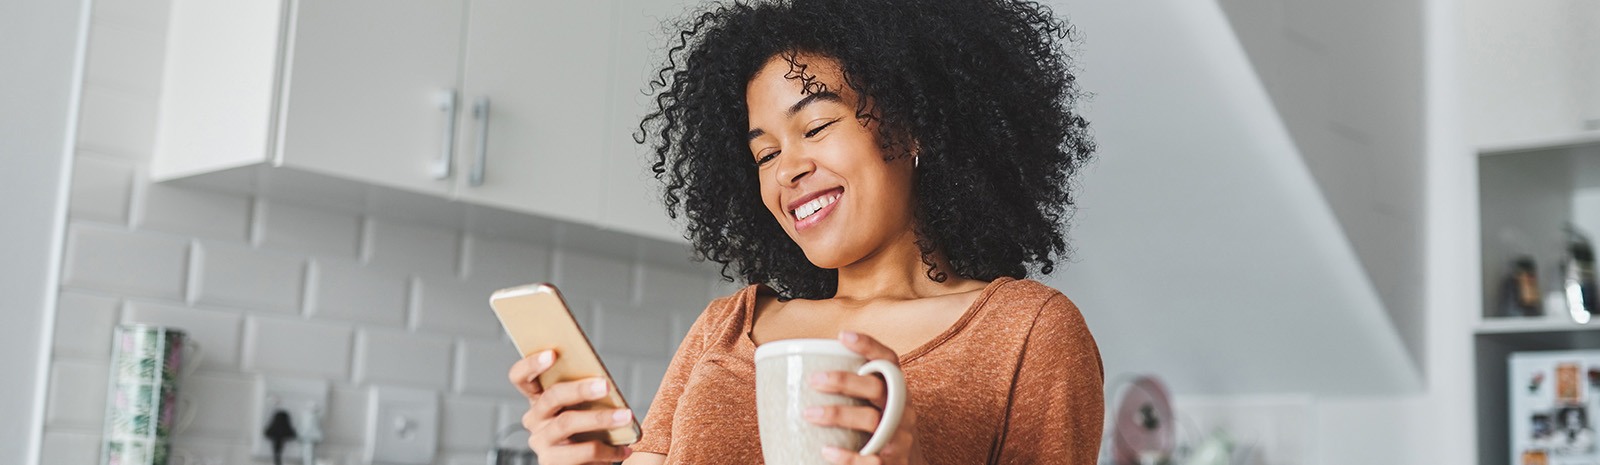 Woman on a cell phone holding a coffee